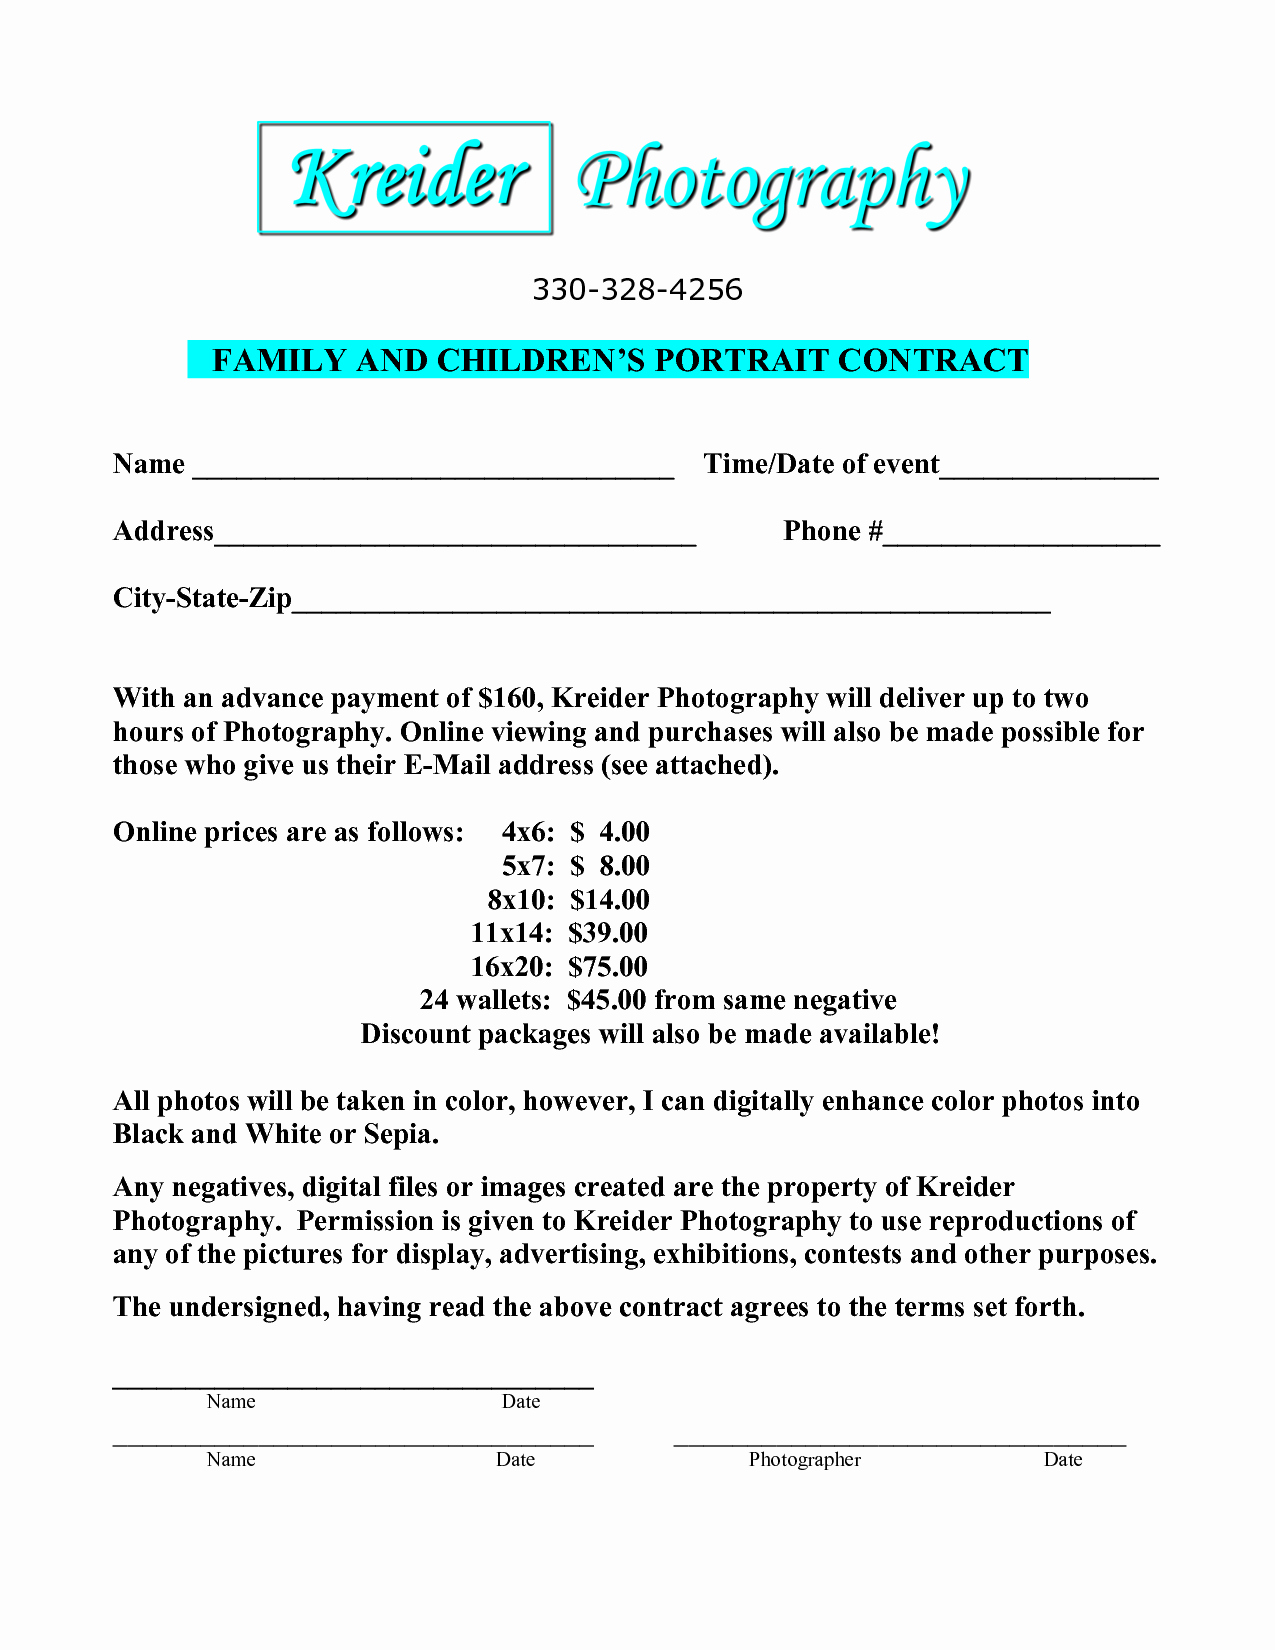 Portrait Photography Contract Template Awesome Portrait Graphy Contract Template Free Printable